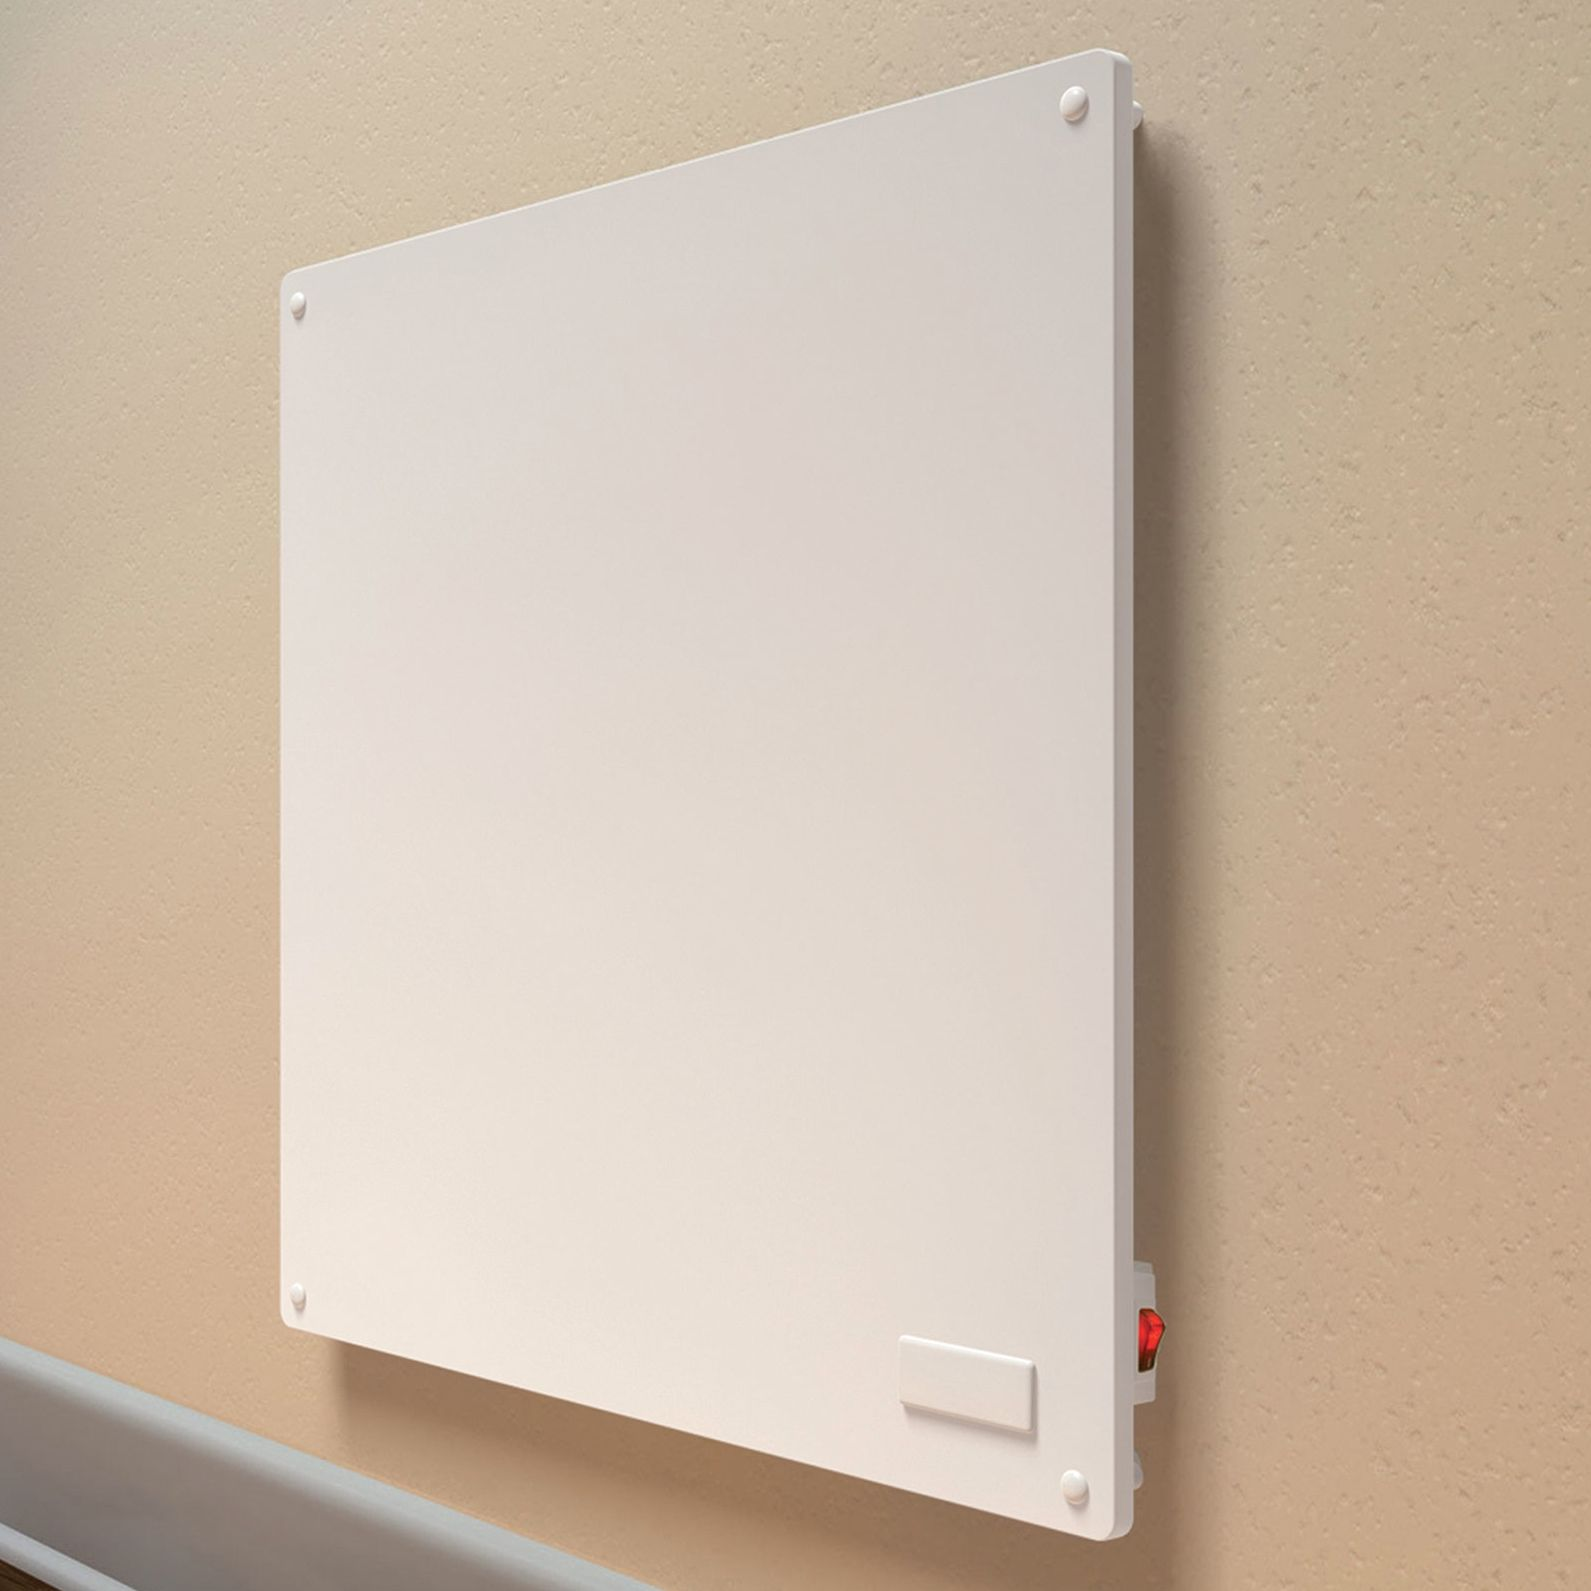 The 10 Best Wall Mounted Panel Heaters In 2017